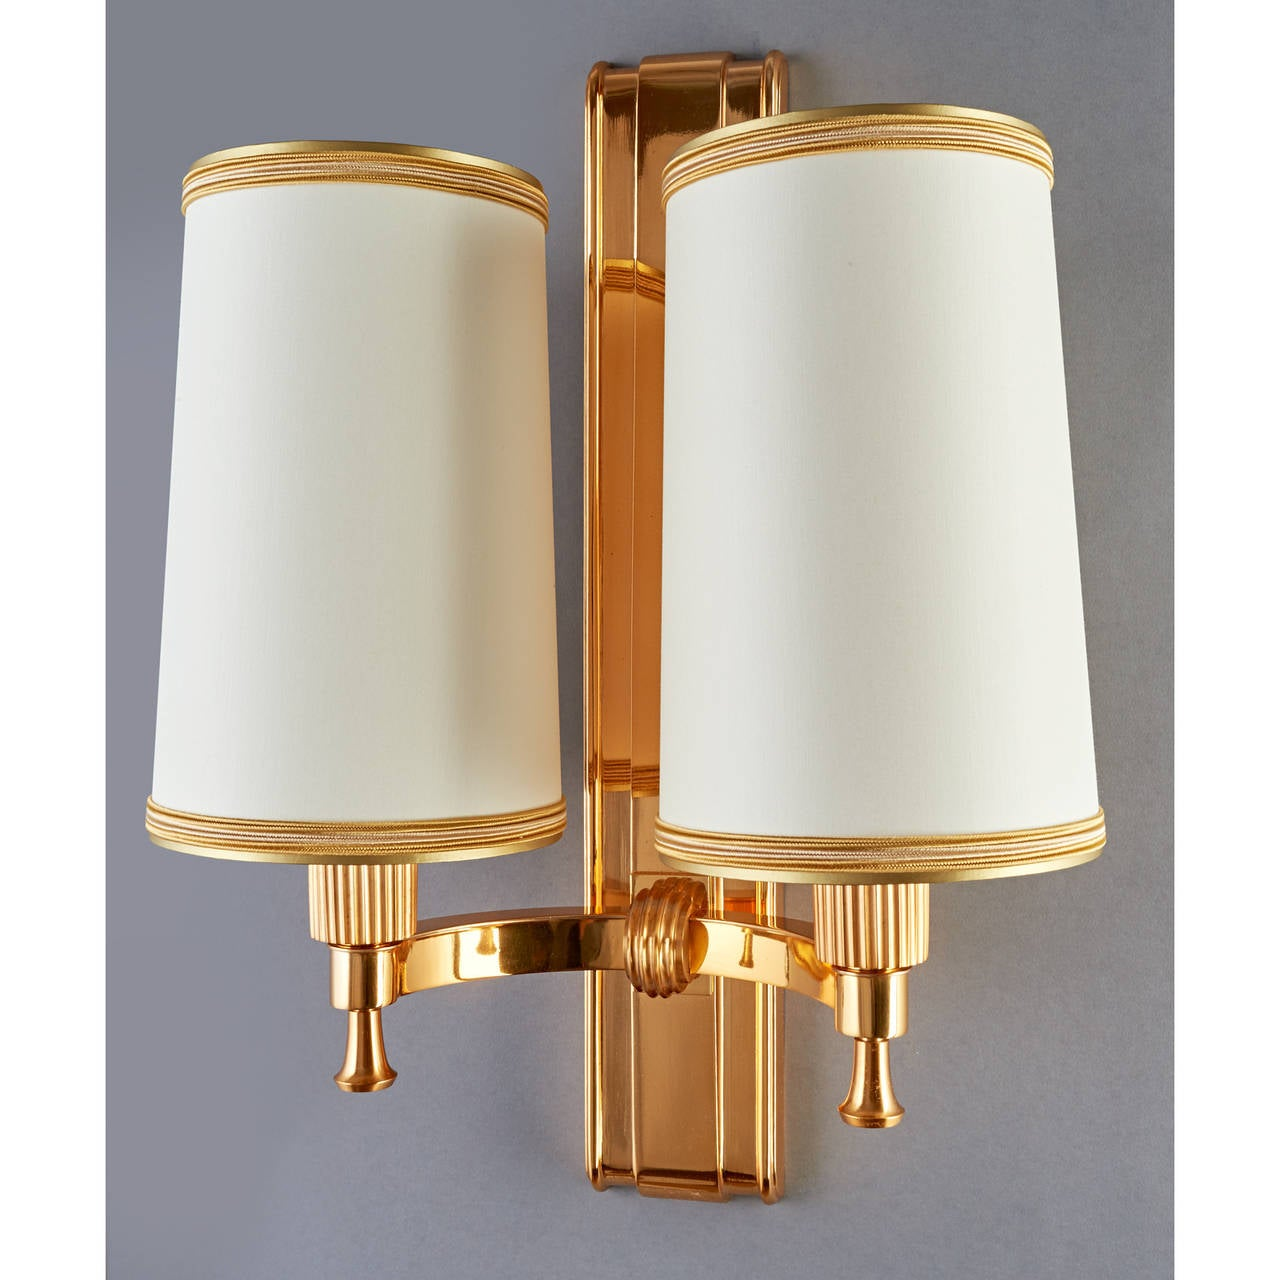 Elegant 1940's Bronze Sconces by Maxime Old 3